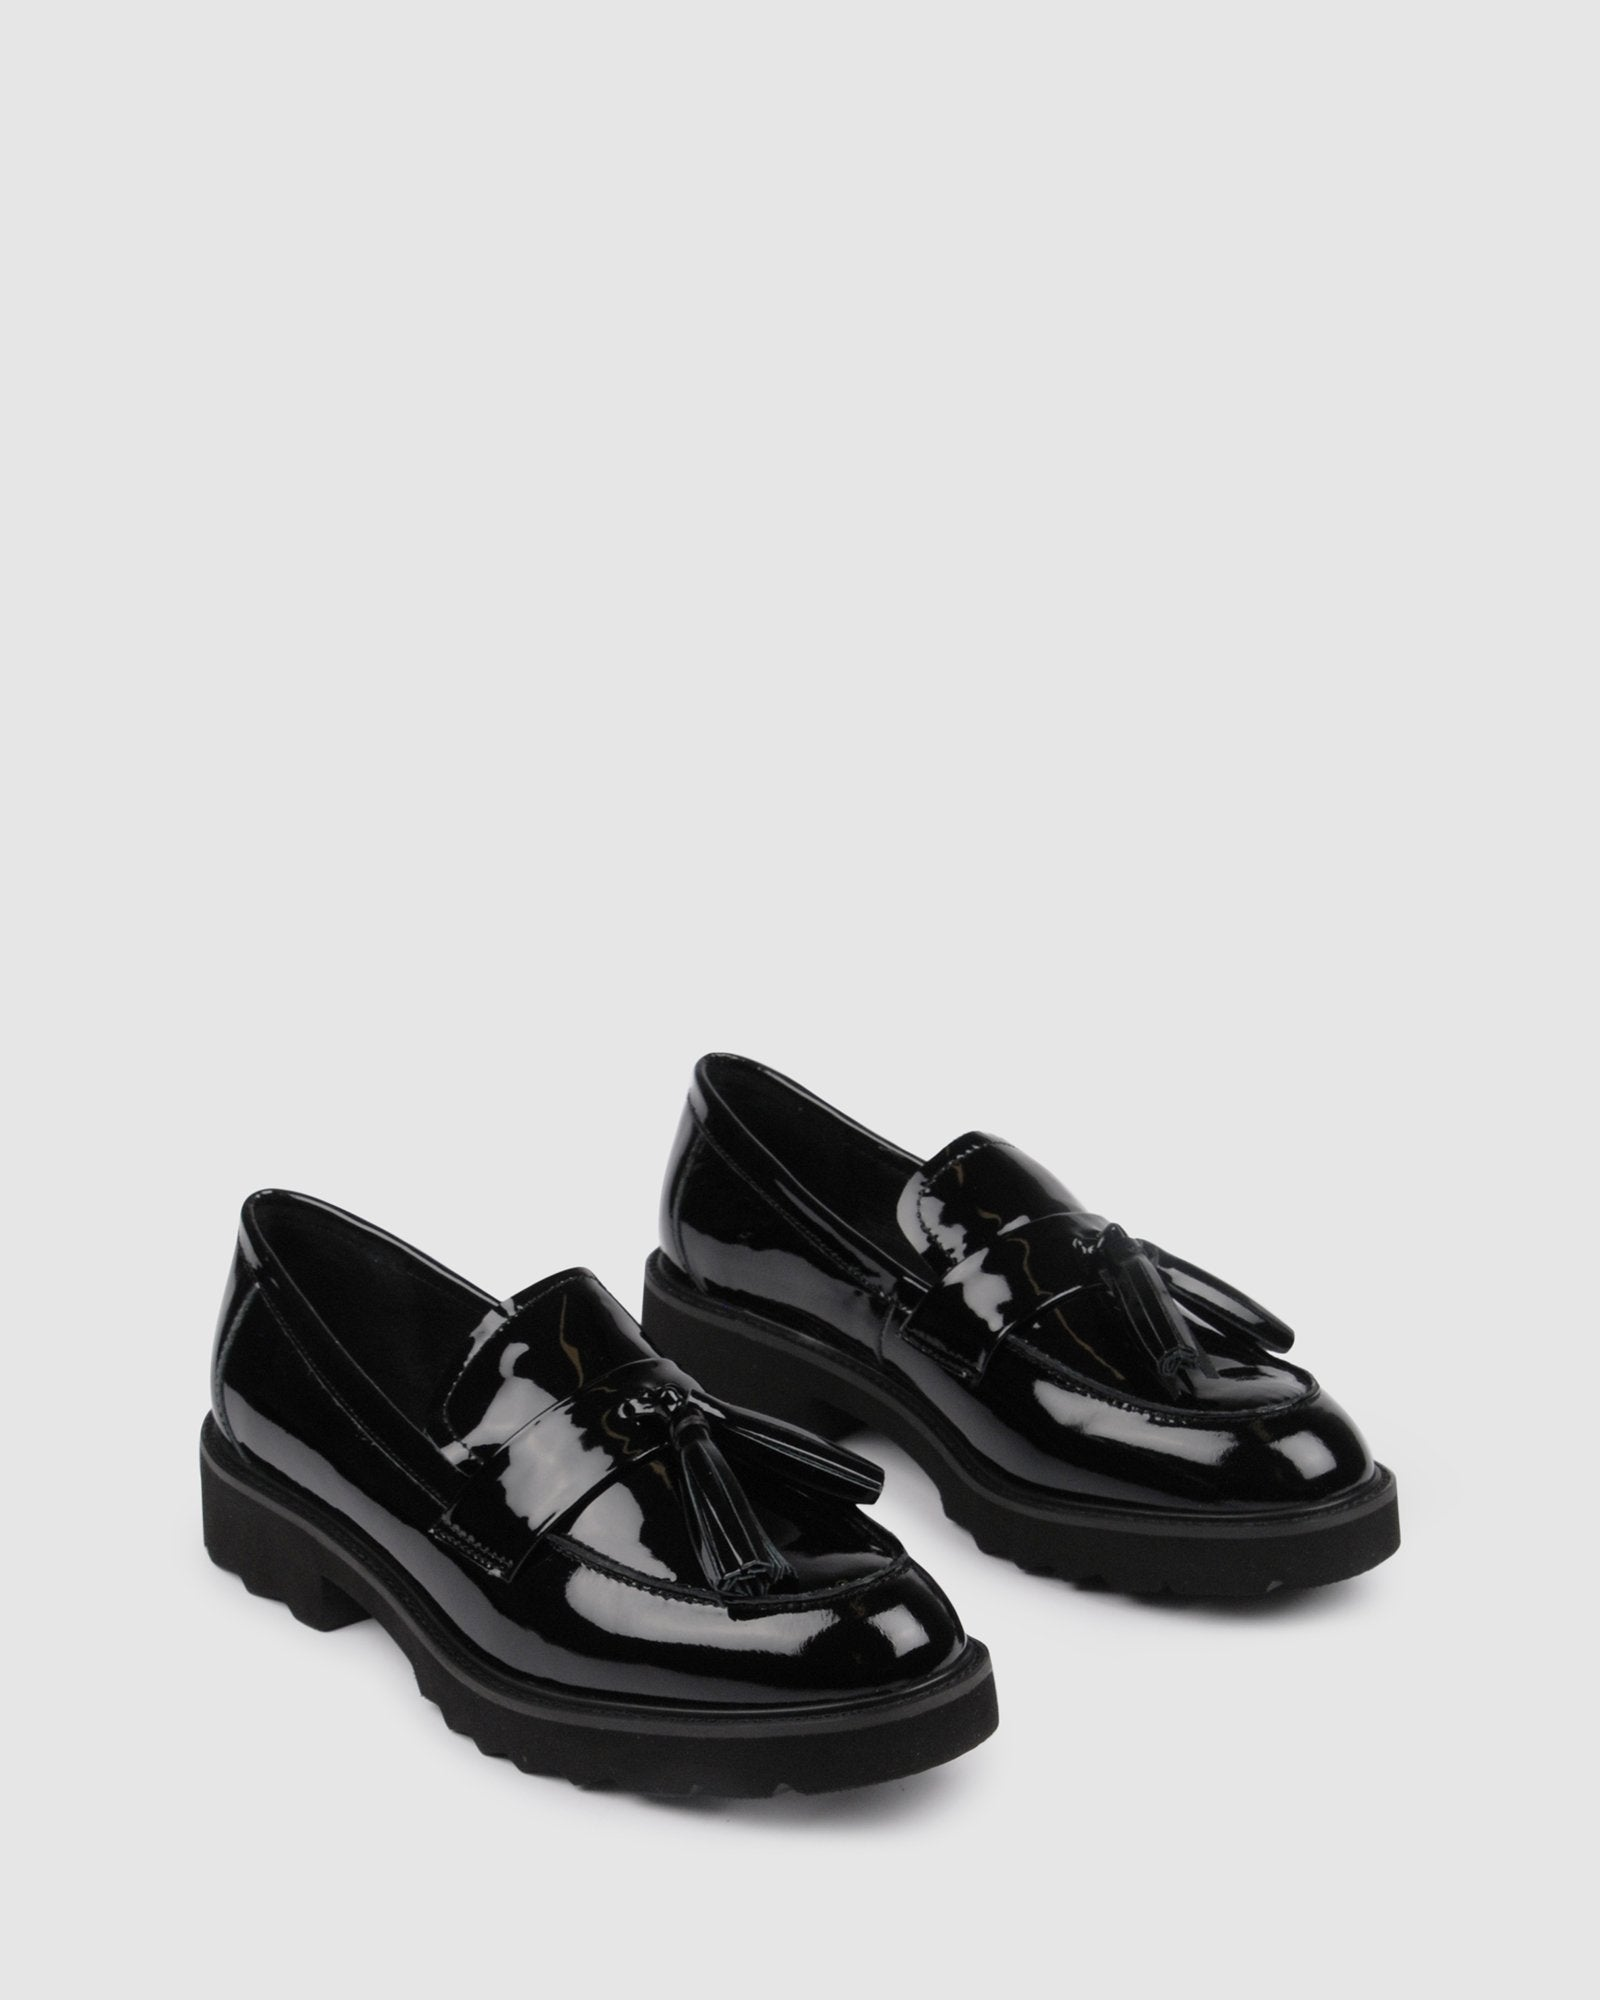 SABLE LOAFERS BLACK PATENT